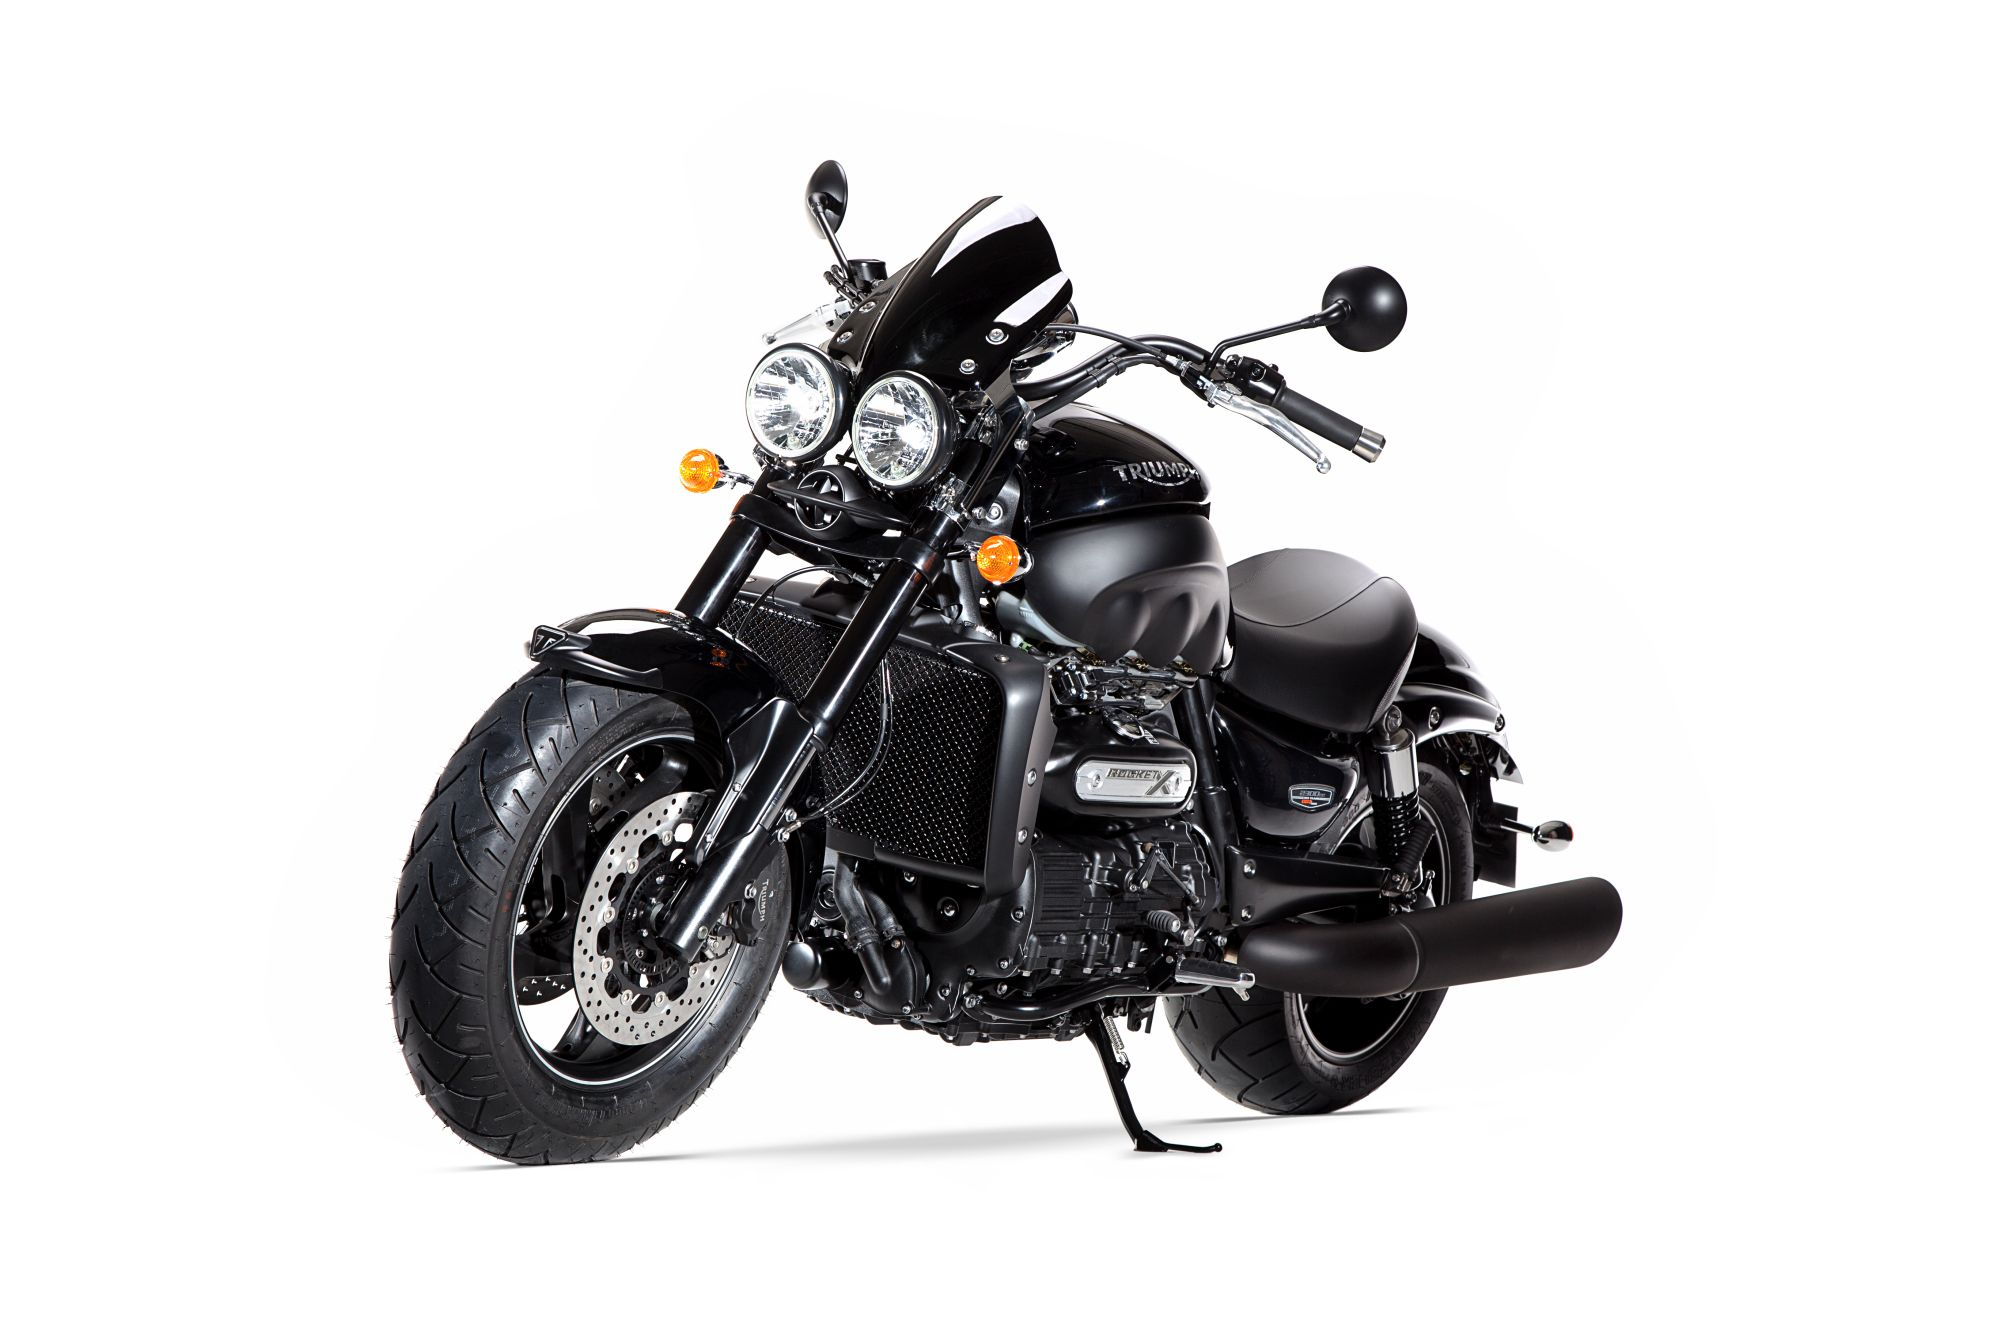 gebrauchte triumph rocket x motorr der kaufen. Black Bedroom Furniture Sets. Home Design Ideas